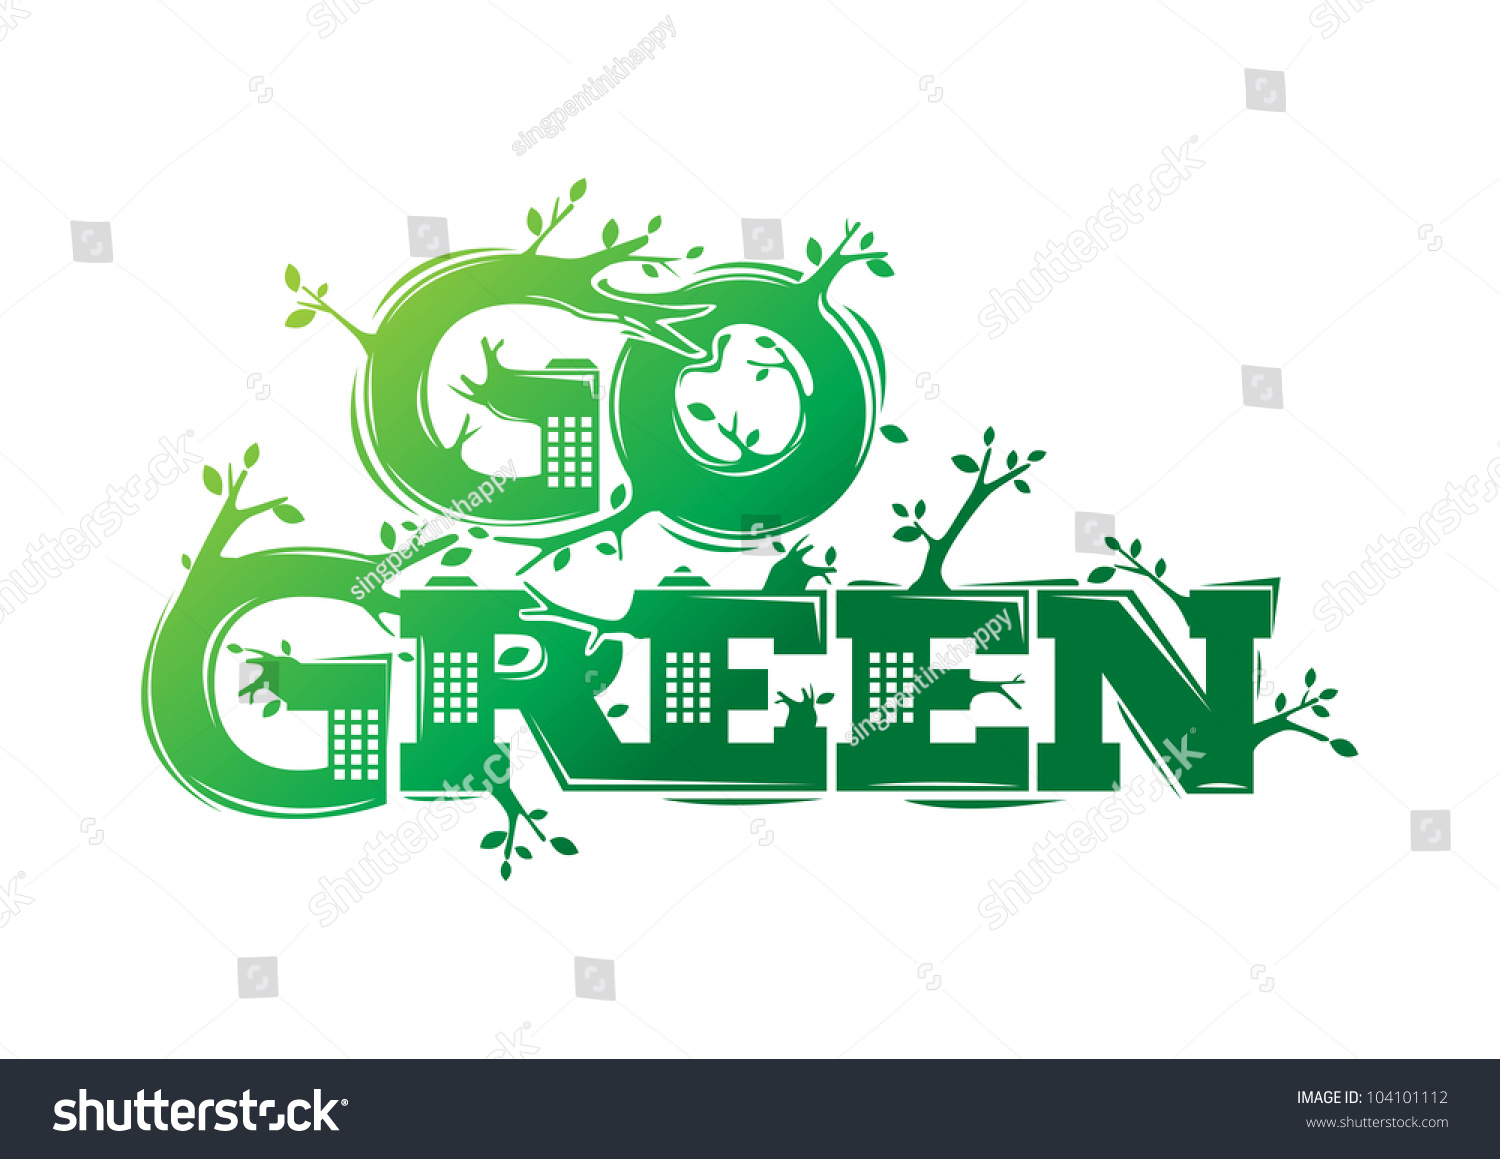 Go Green Campaign Poster Stock Vector Illustration 104101112 : Shutterstock